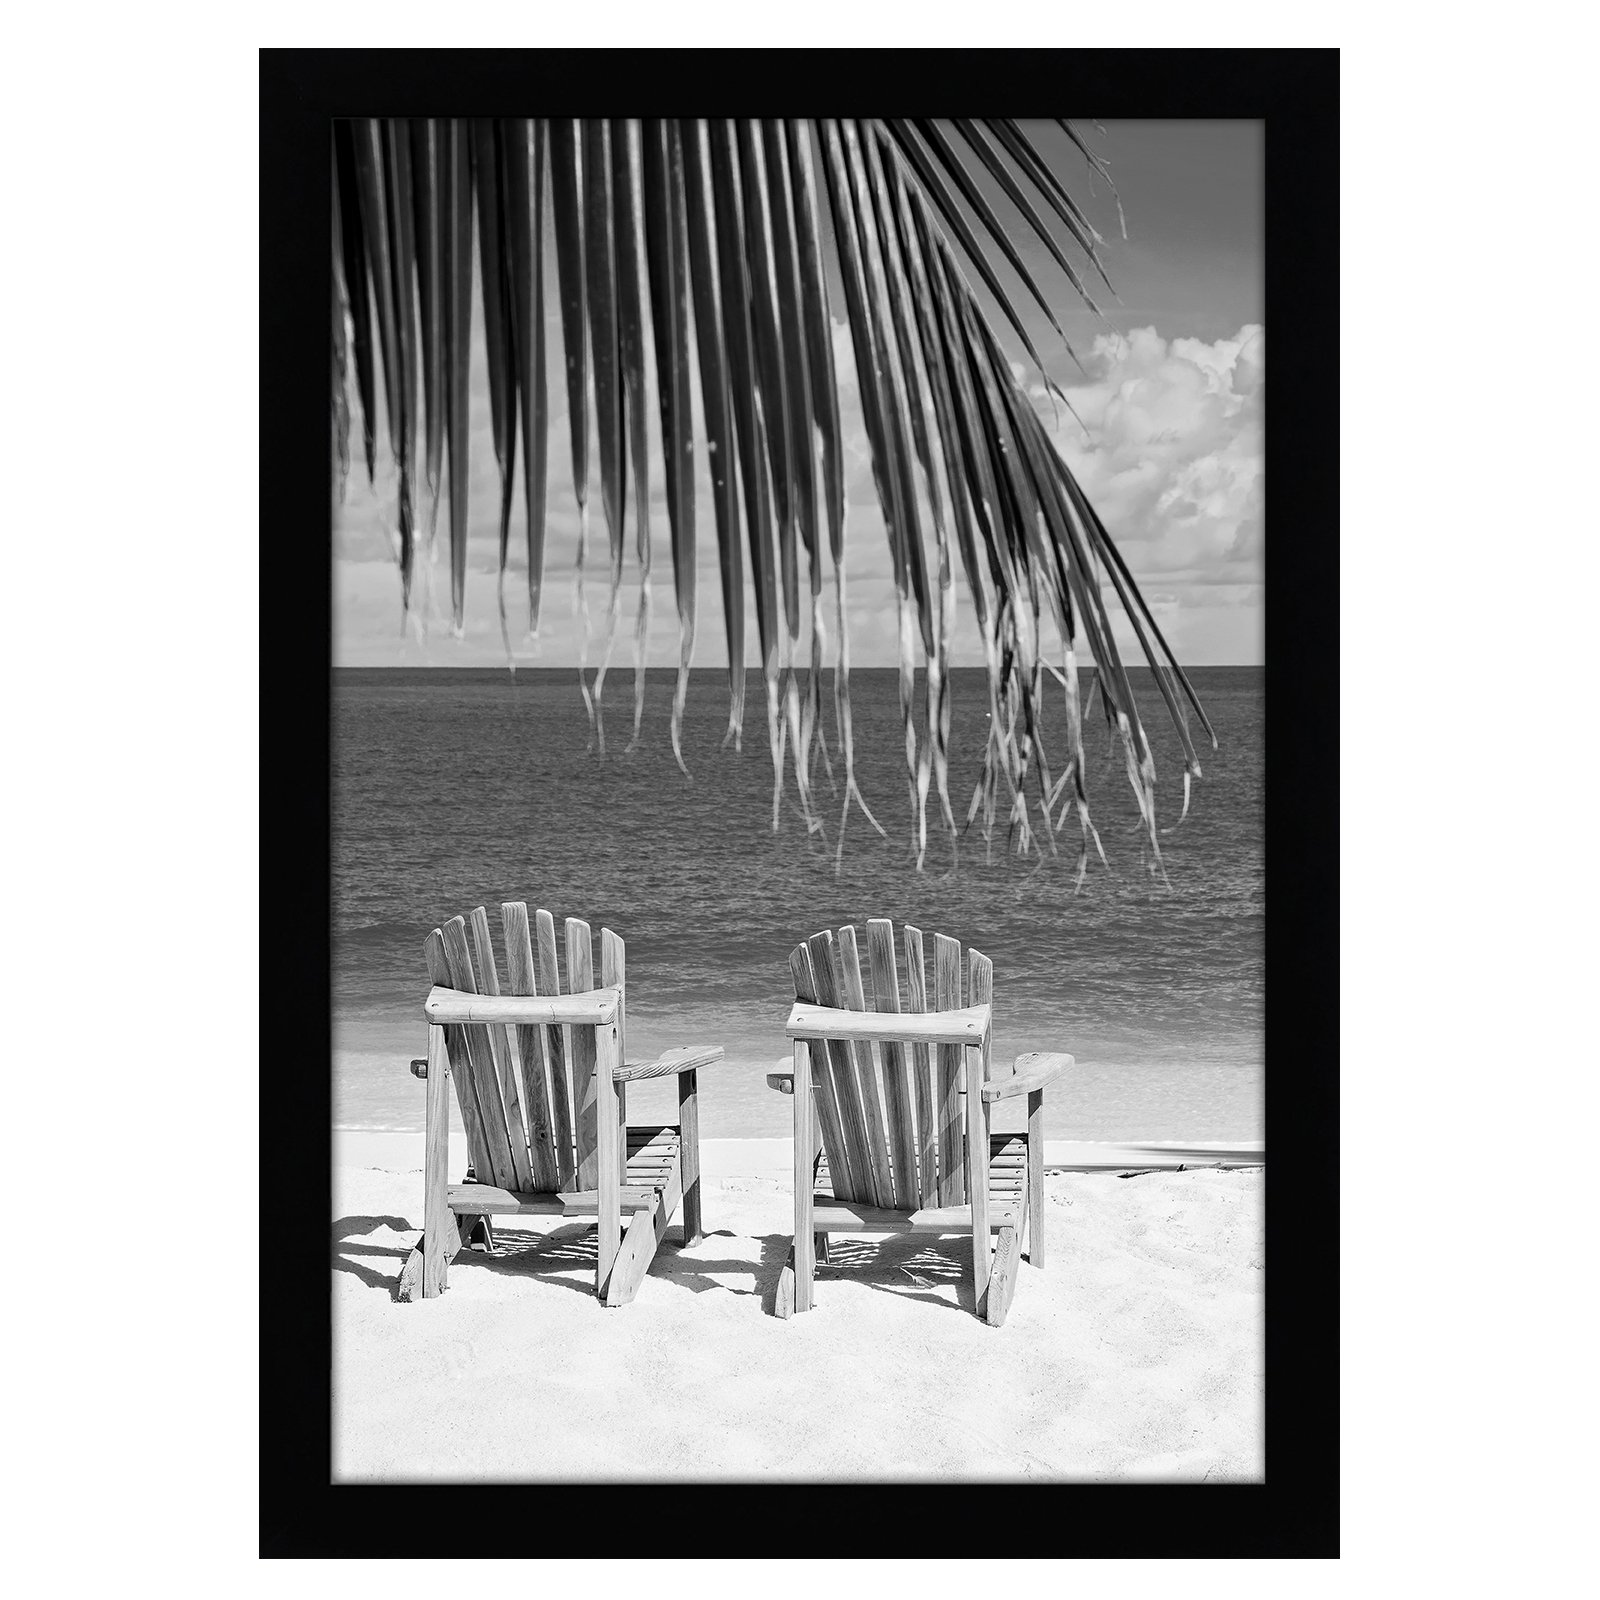 Americanflat 13x19 Black Poster Frame - Shatter-Resistant Glass - Hanging Hardware Included by Americanflat